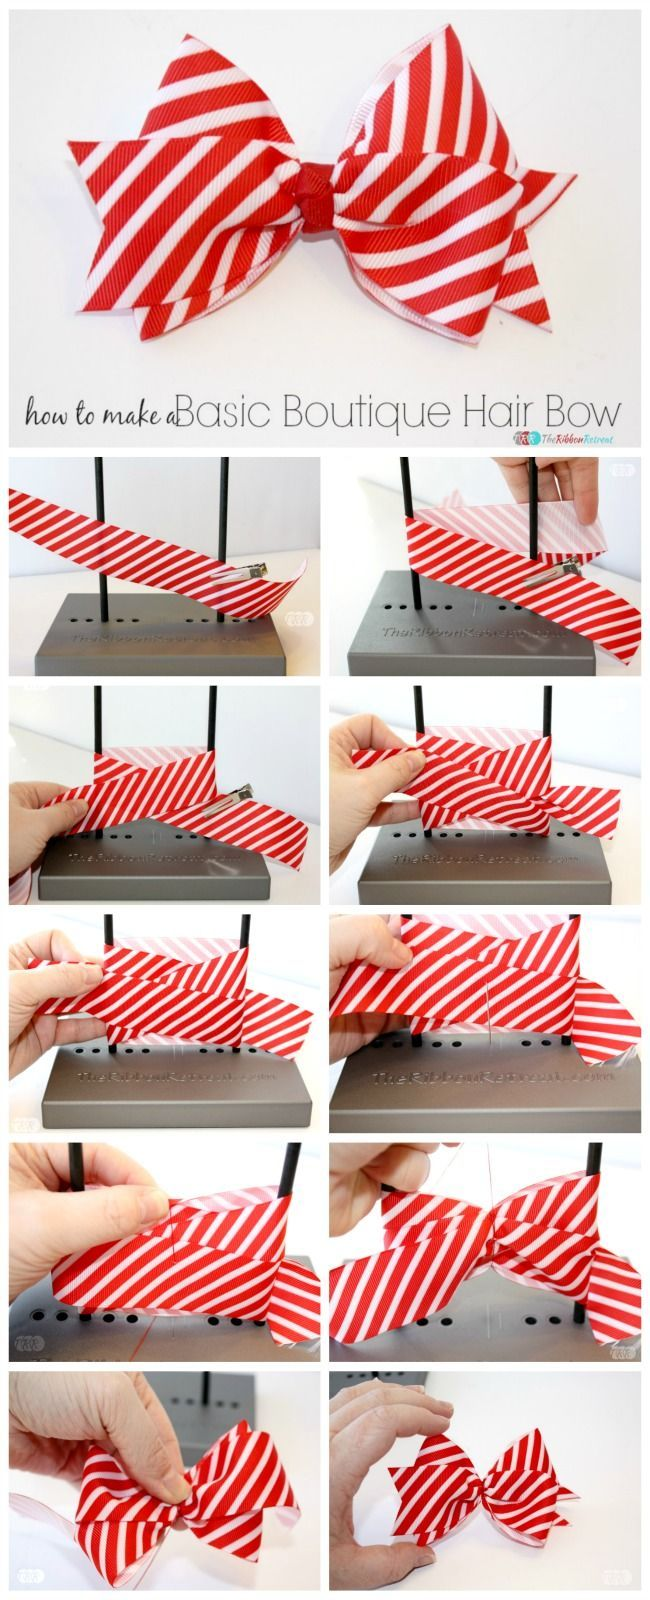 How To Make A Basic Boutique Hair Bow - The Ribbon Retreat Blog